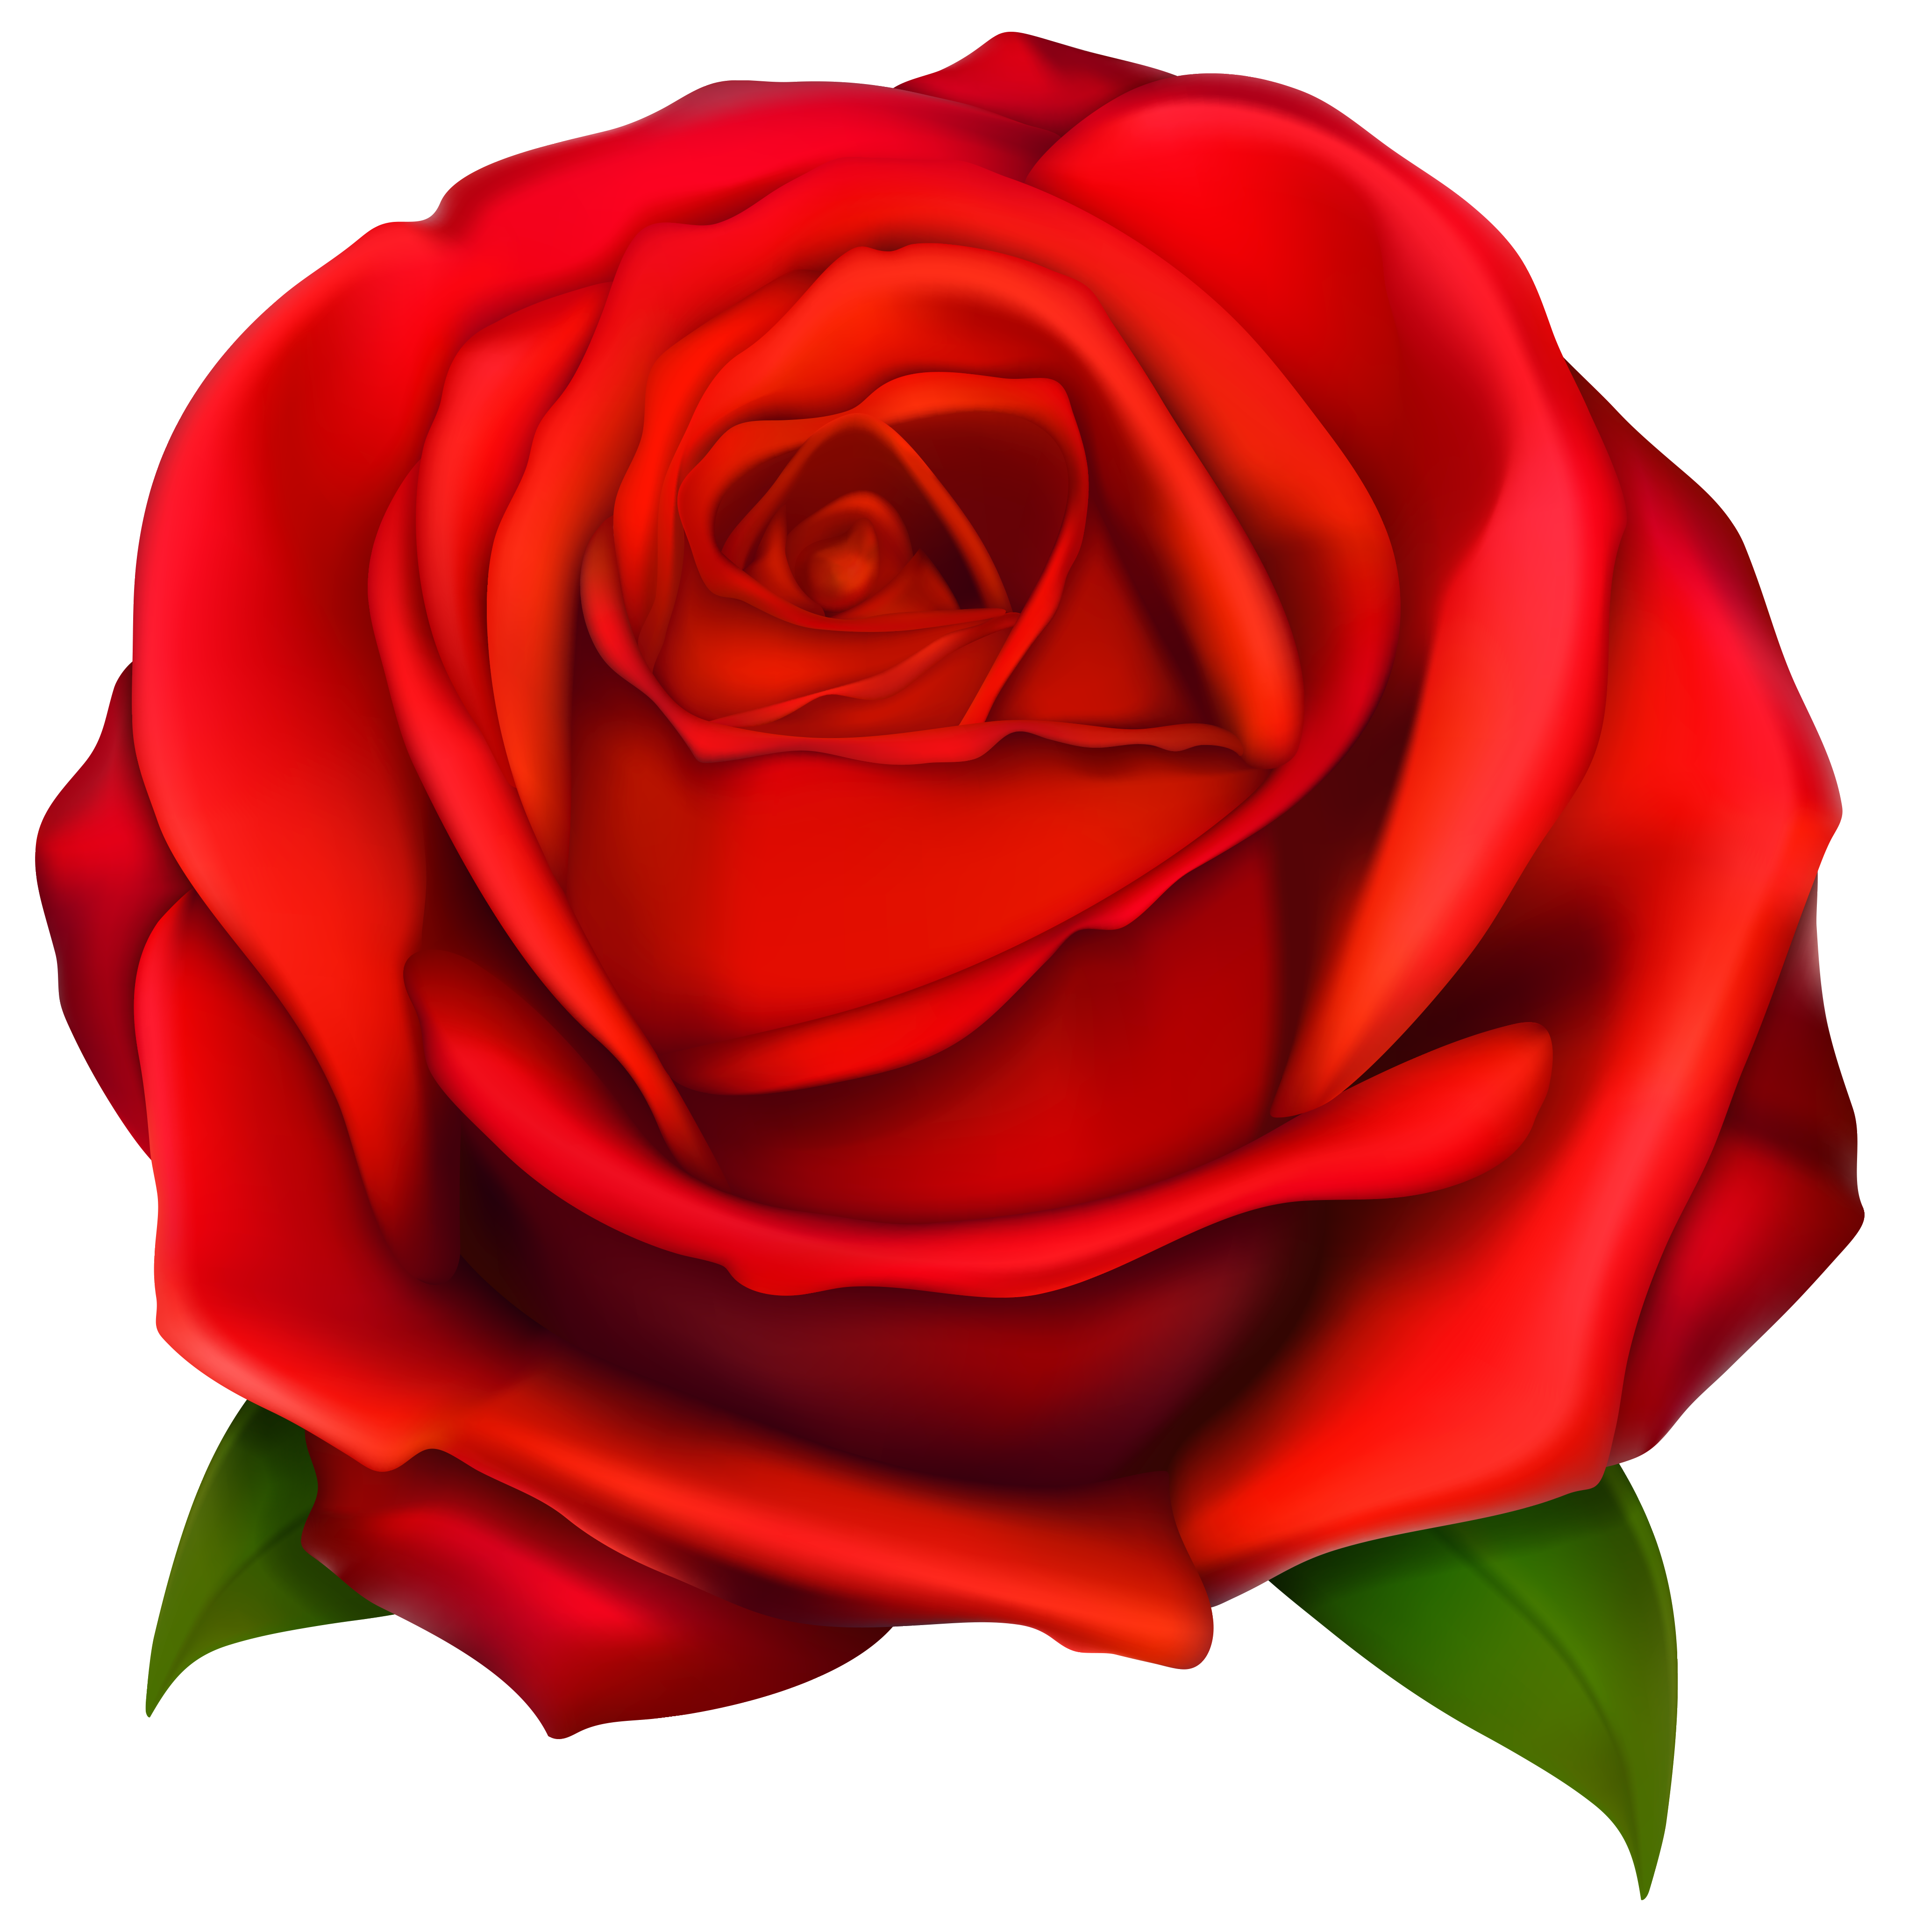 Image Of Clip Art Red Rose 2 .-Image of clip art red rose 2 .-8